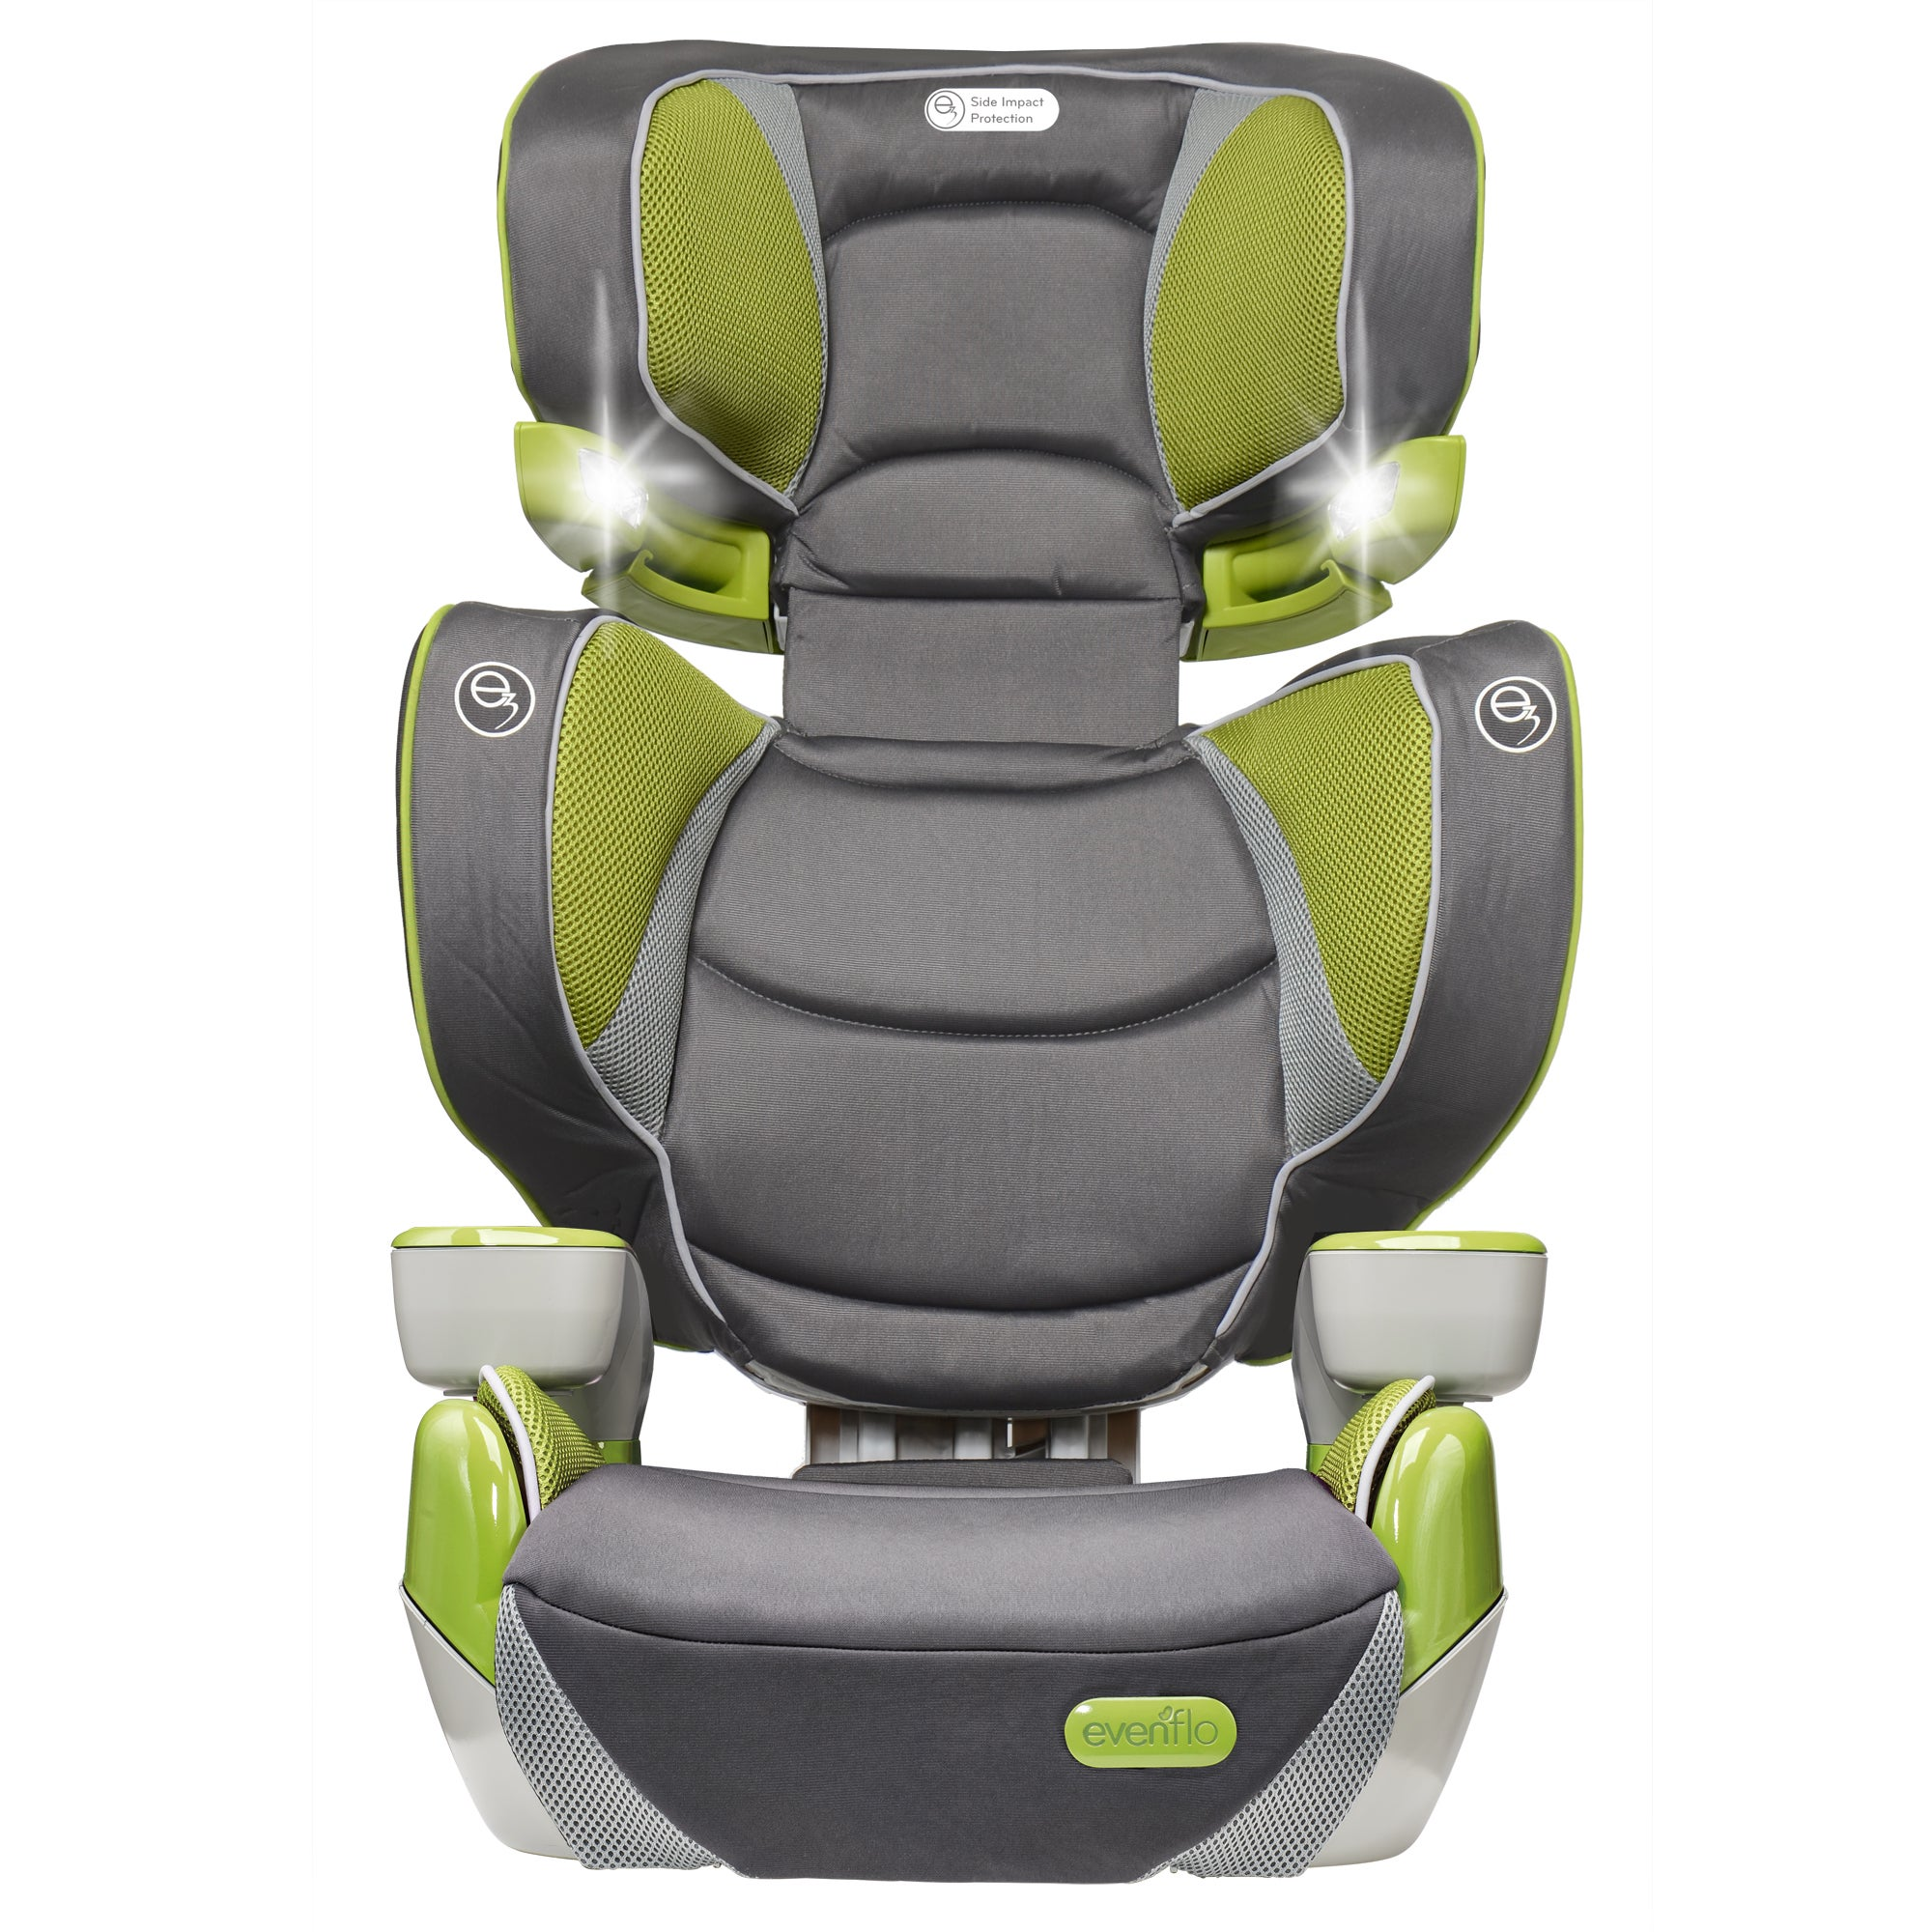 Shop Evenflo RightFit Booster Car Seat in